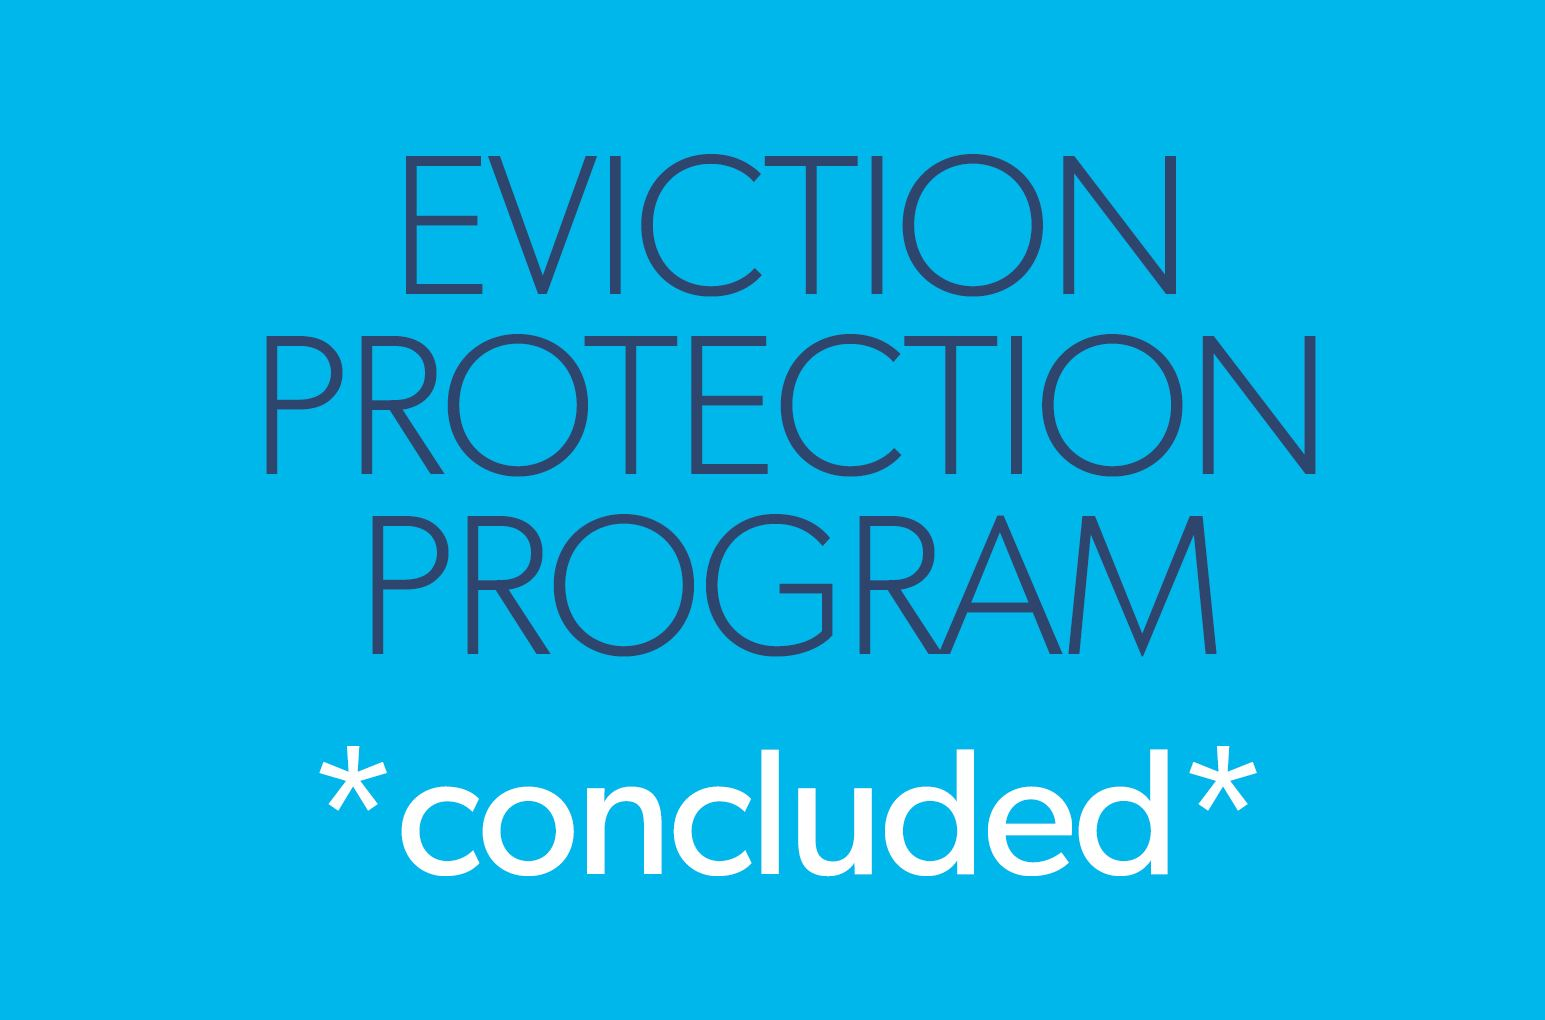 eviction protection program concluded R